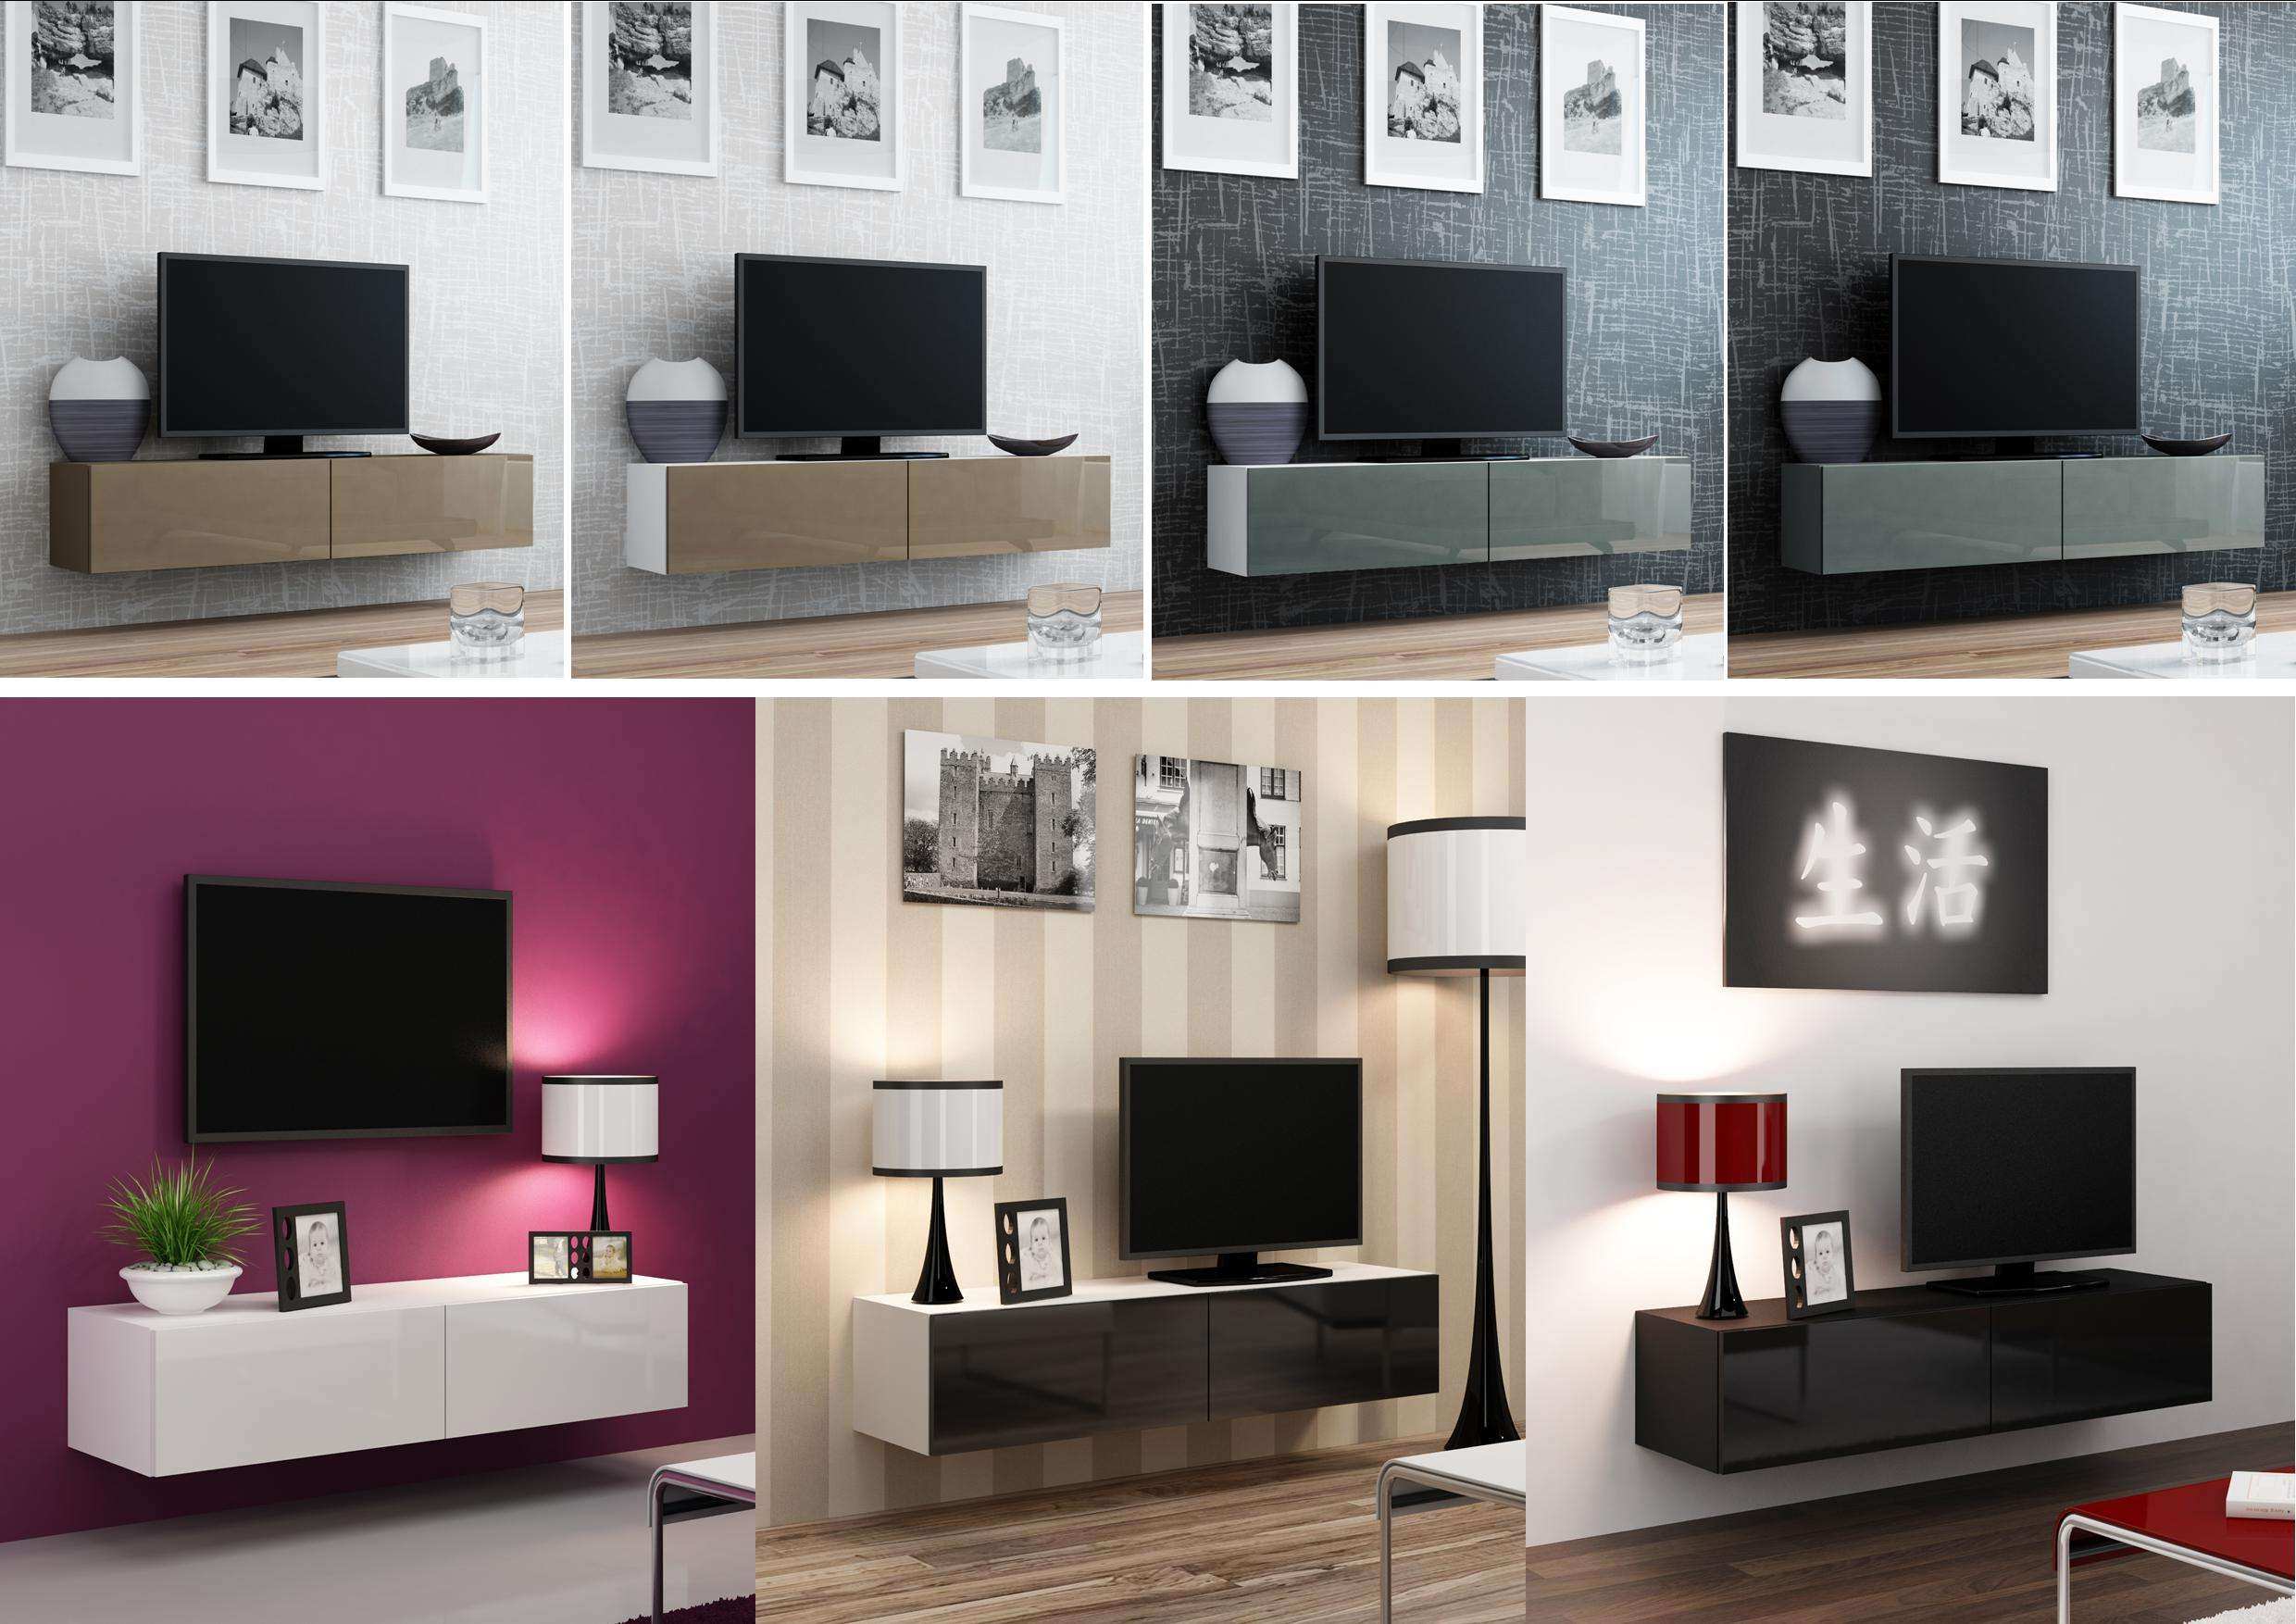 High Gloss Tv Stand Cabinet Wall Mountable | Floating Throughout High Gloss Tv Cabinets (View 20 of 20)